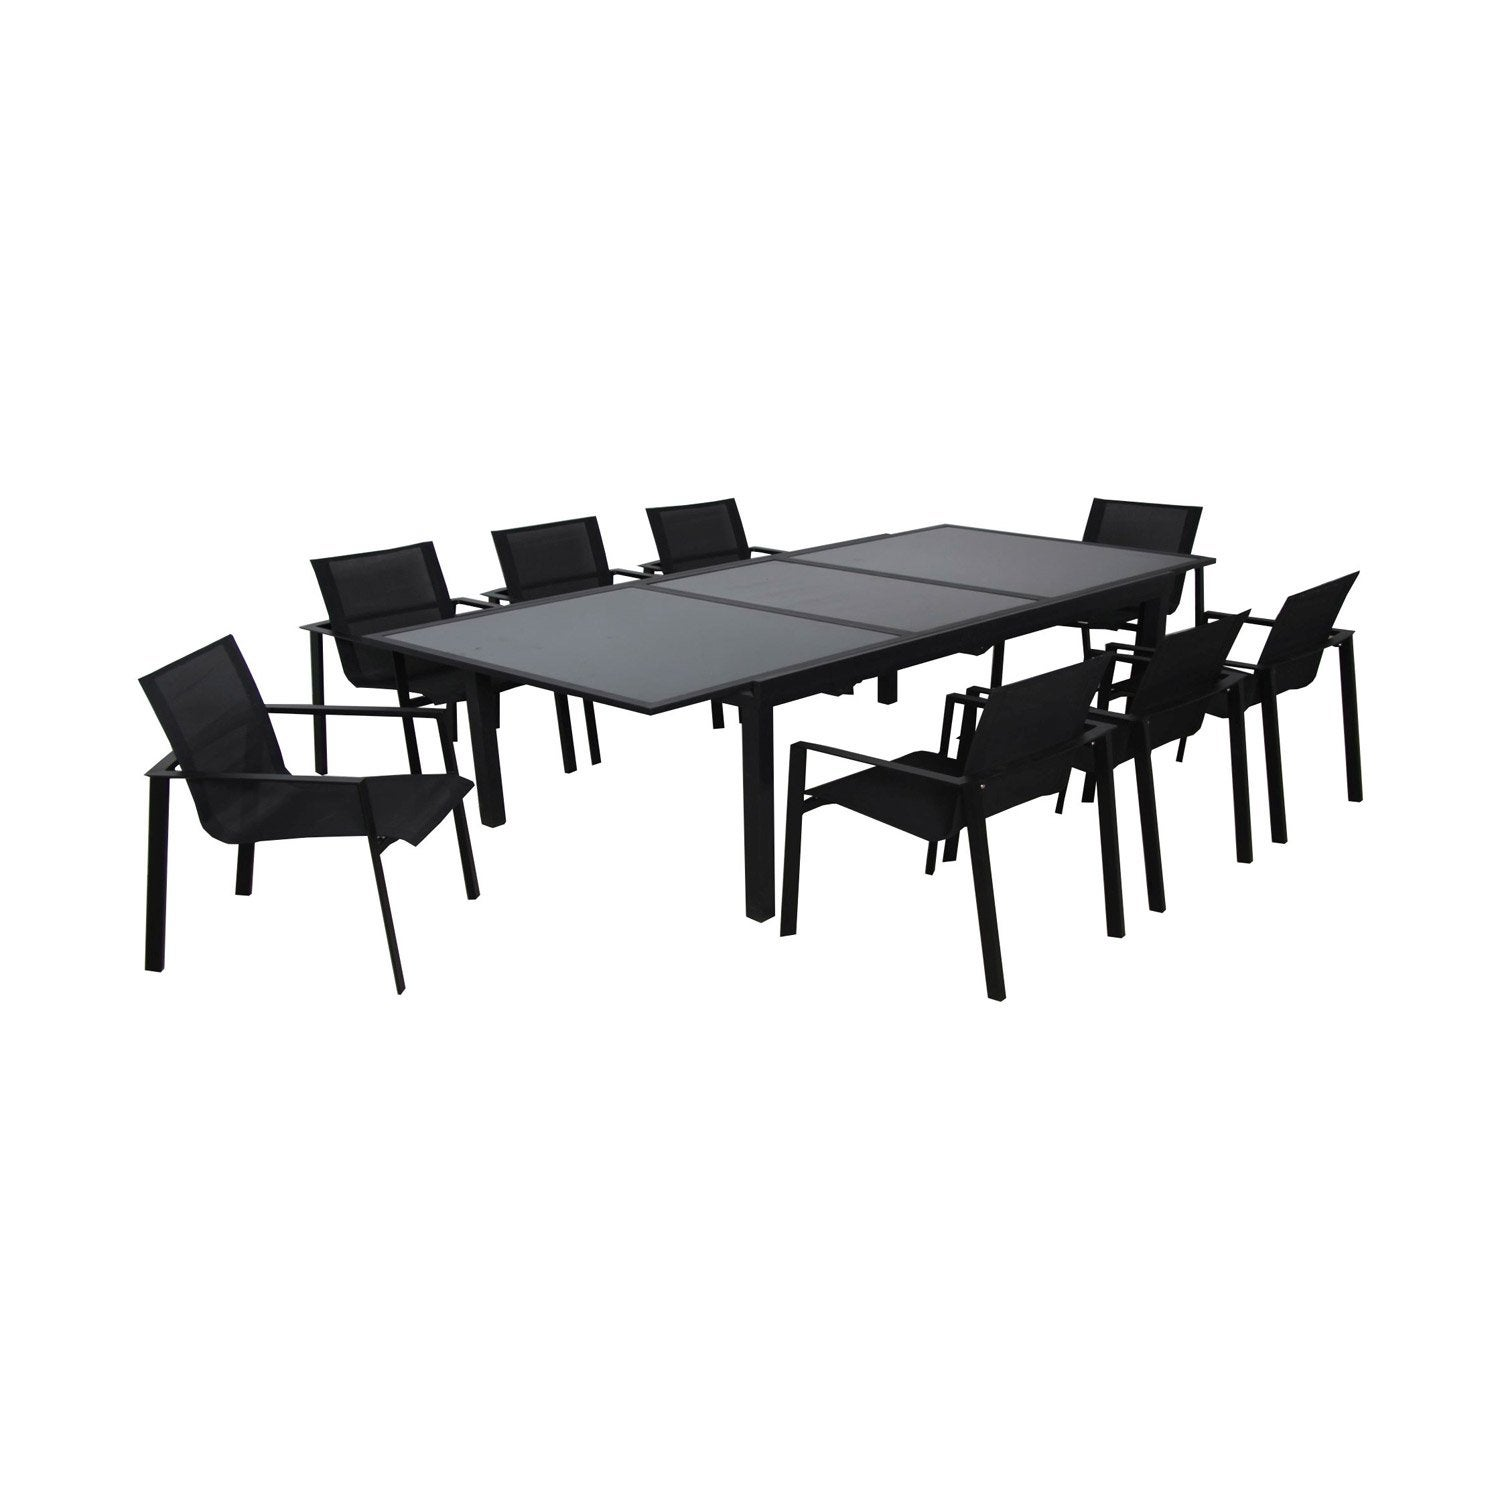 Table de jardin Miami rectangulaire noir 8 personnes | Leroy Merlin